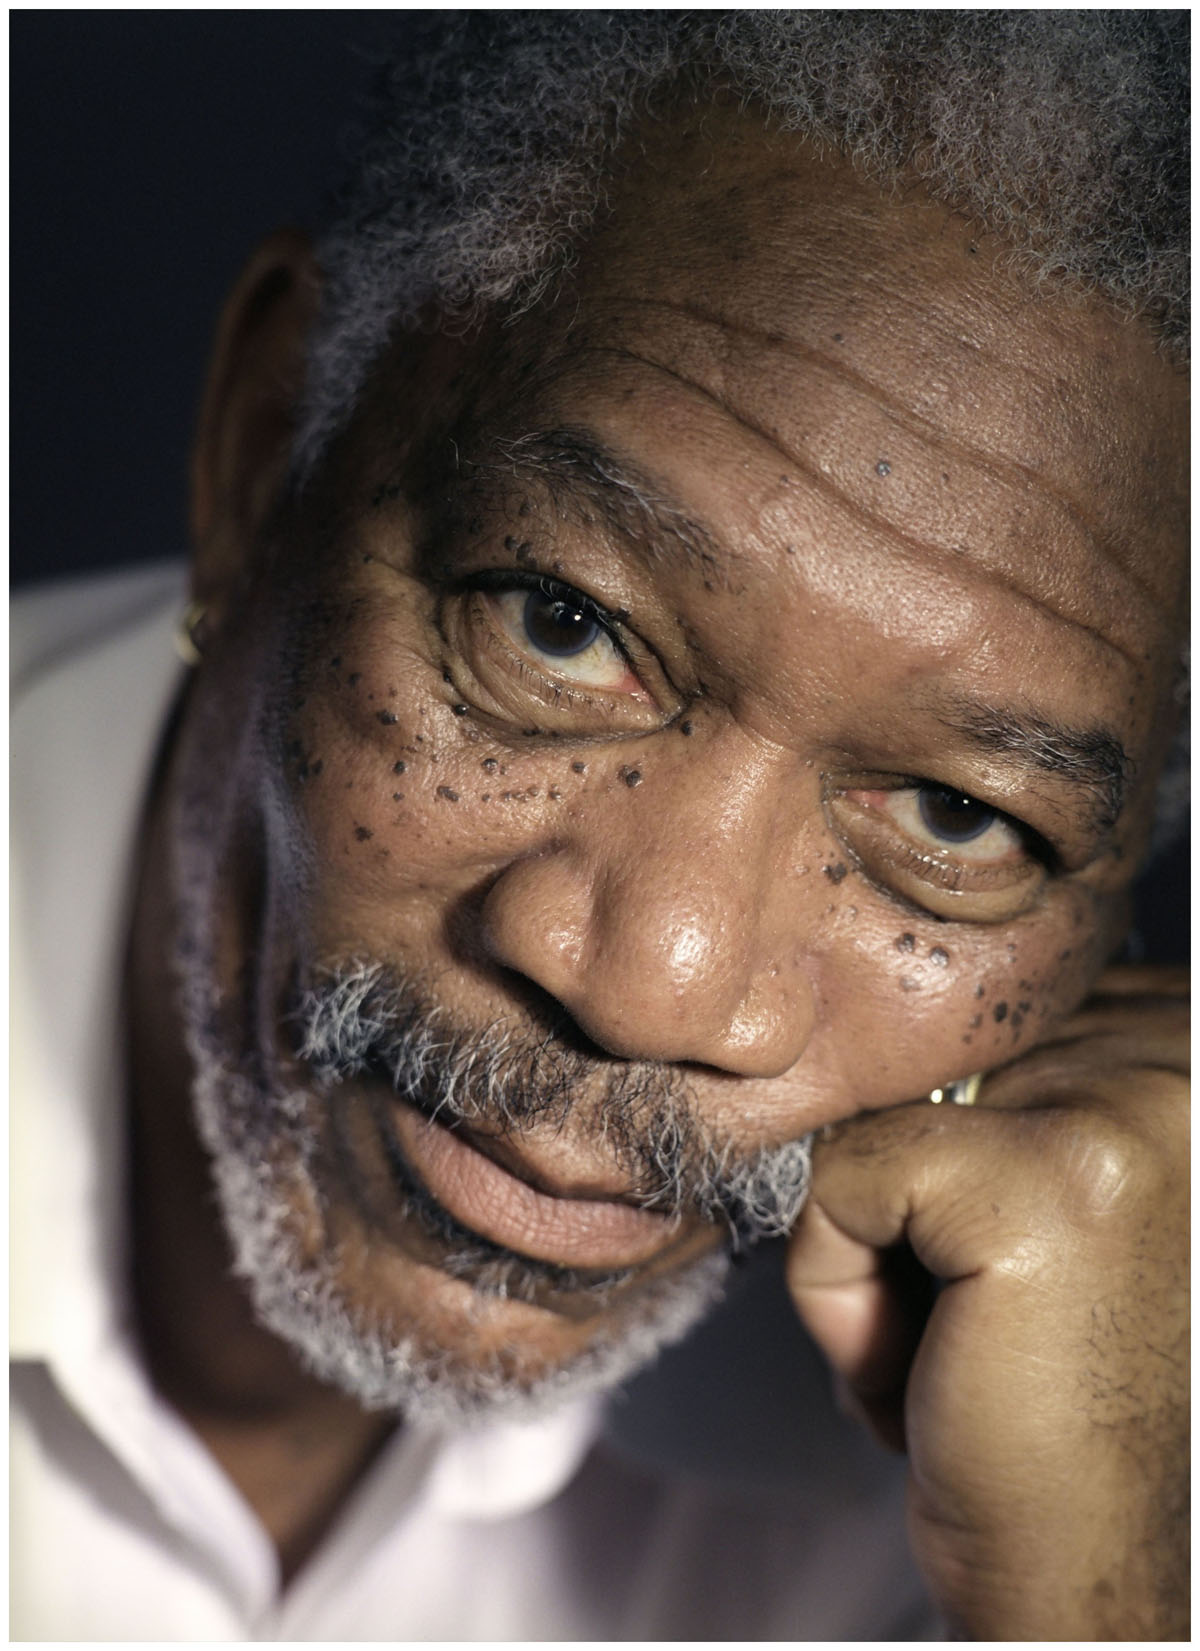 morgan freeman Morgan freeman isn't dead, and action news 3 is a fake news site.